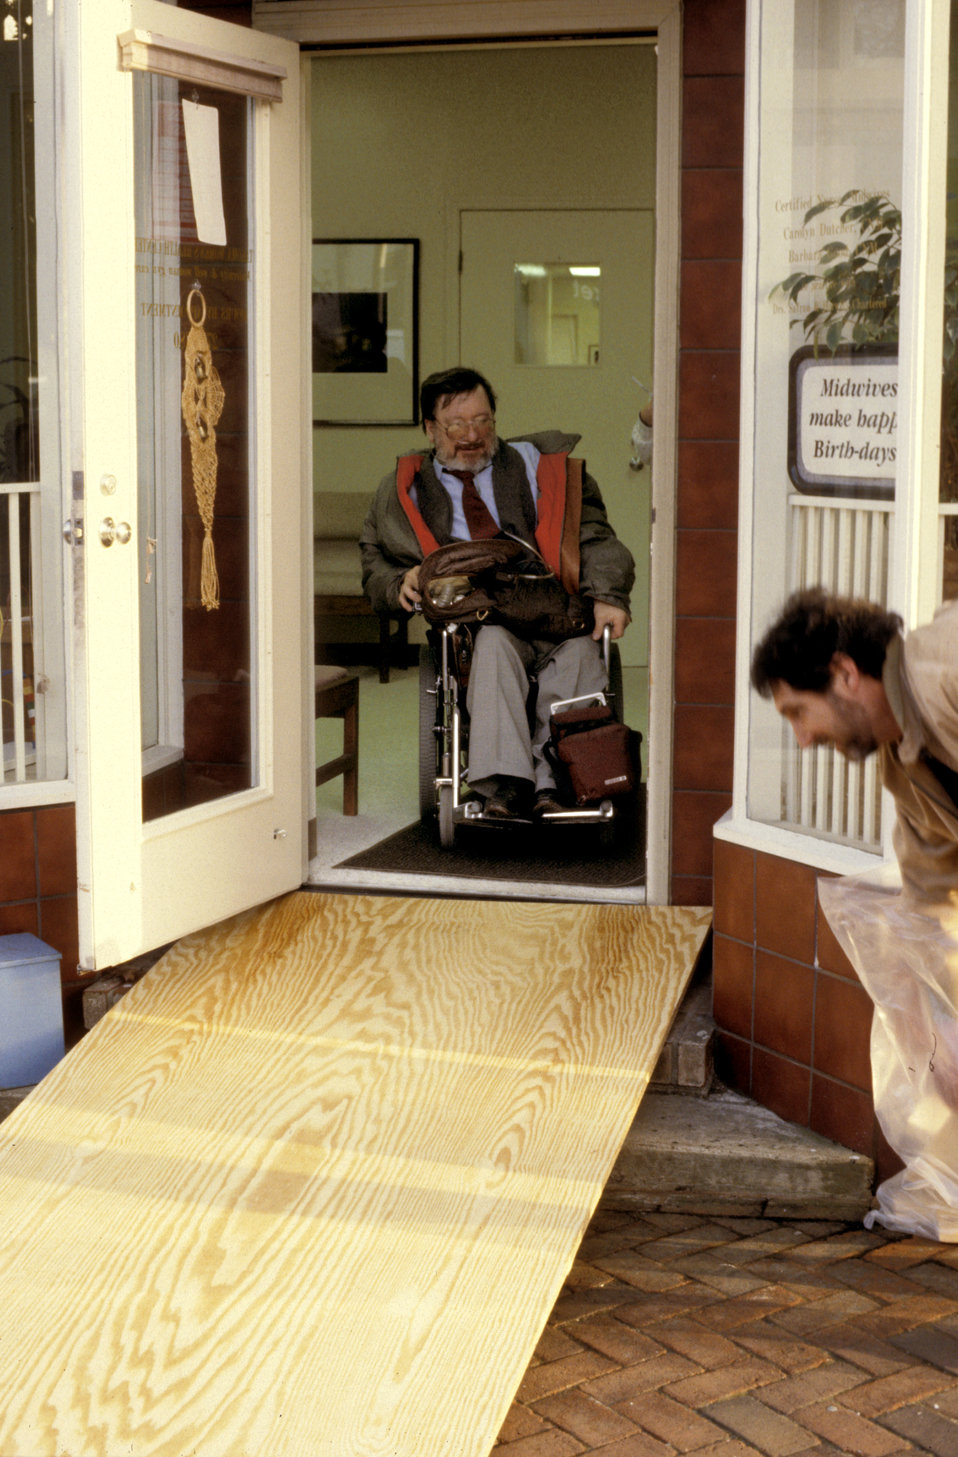 In this 1993 image, the front of a women's clinic revealed a front door that was accessed via a two-step stoop, which made accessibility an